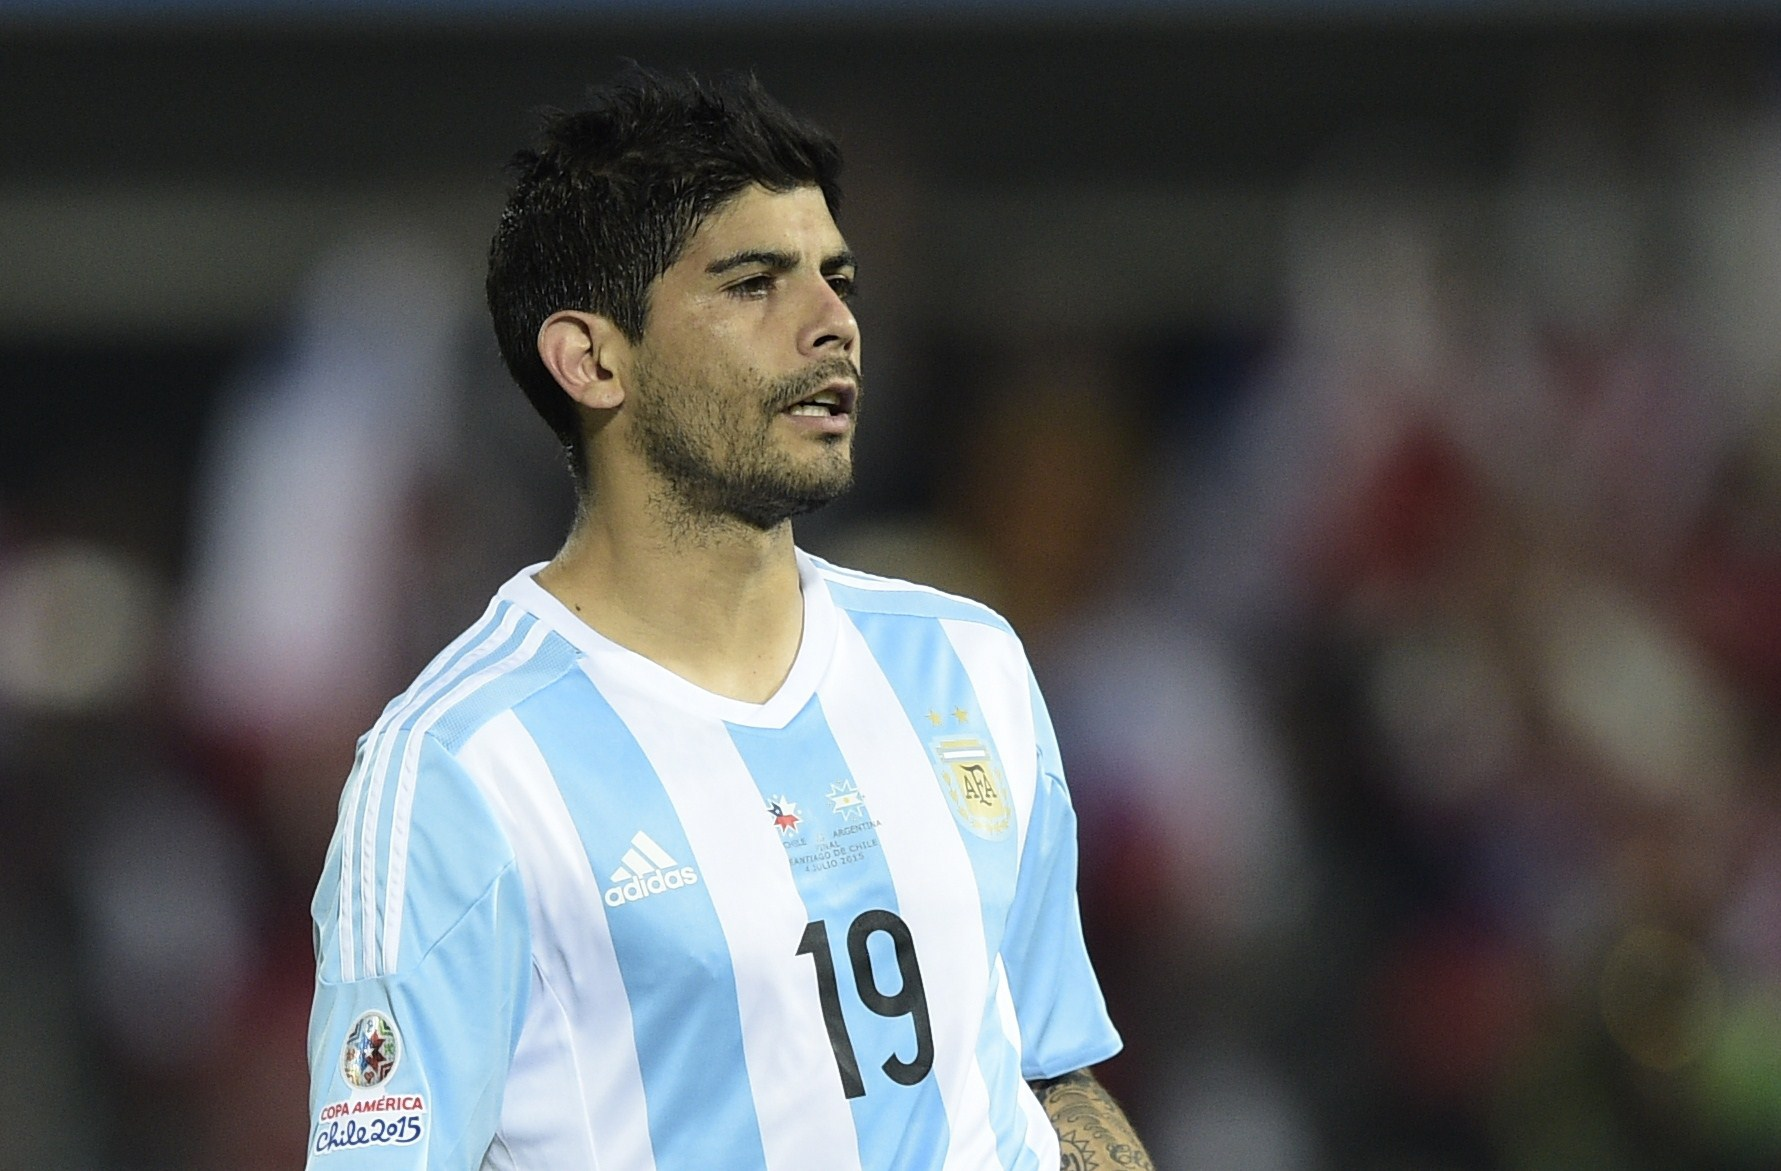 Report: Everton want Sevilla midfielder Ever Banega on free transfer in summer